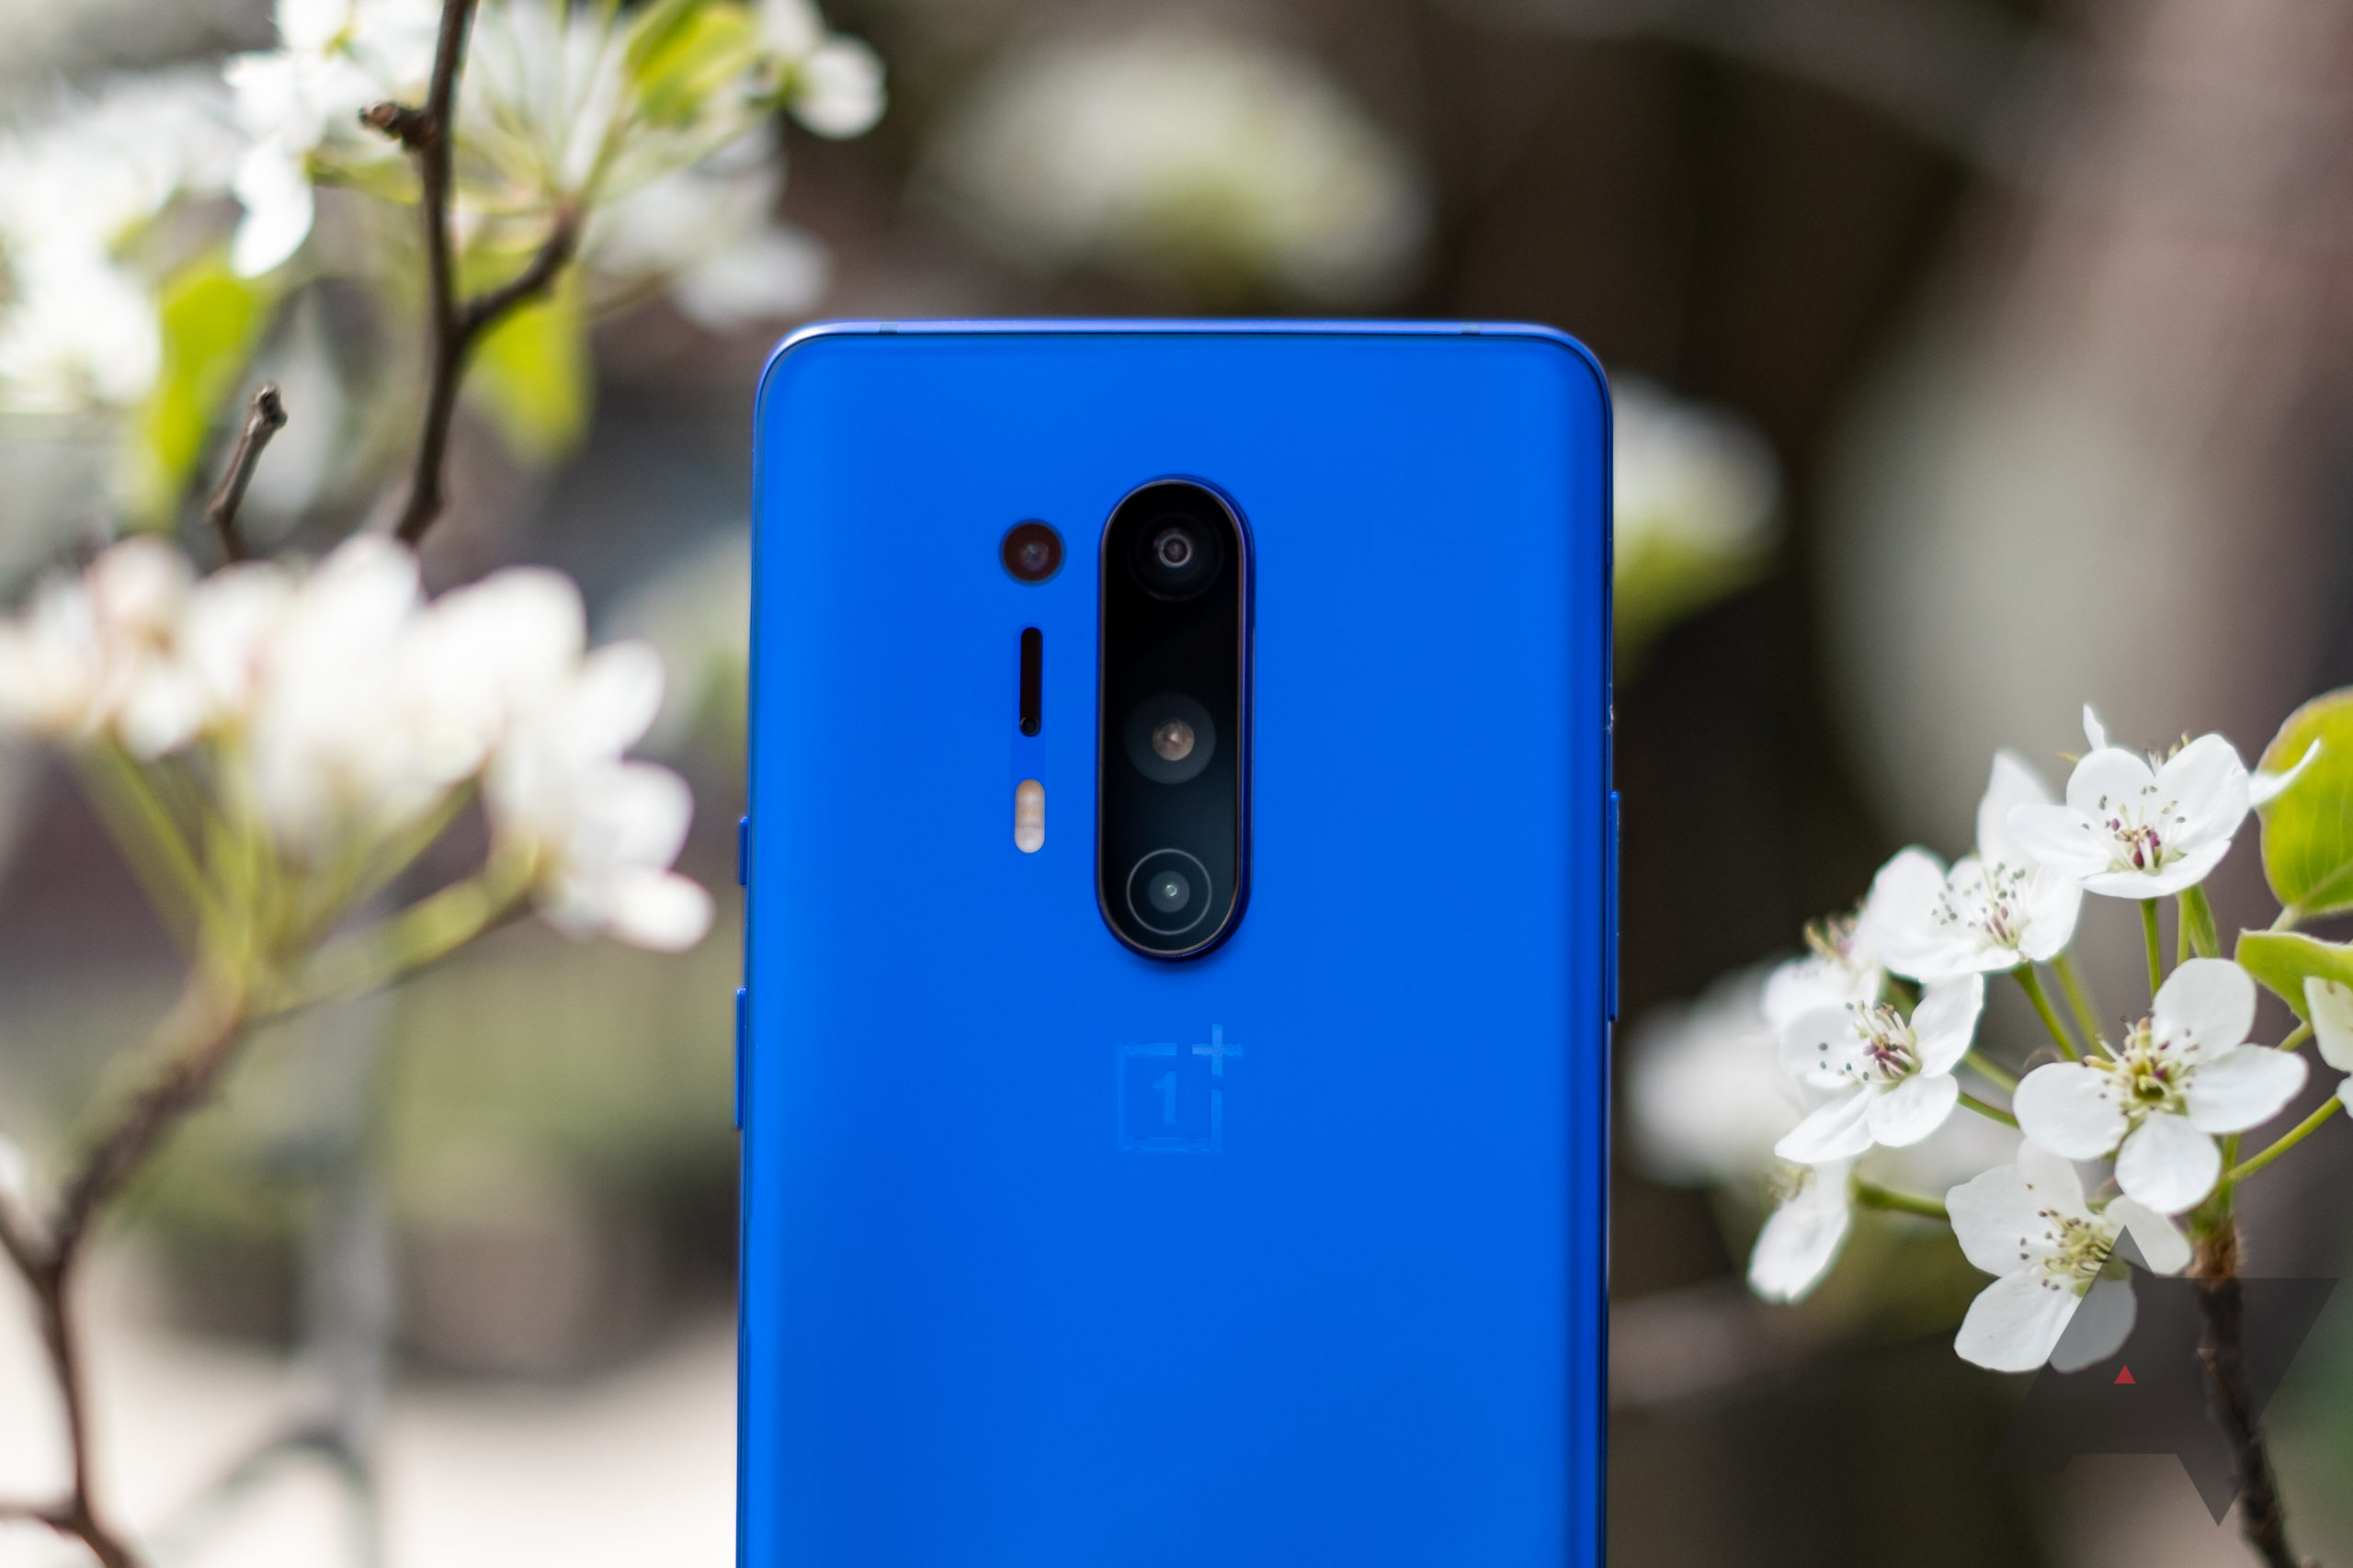 OxygenOS Open Beta 6 brings January security patch to the OnePlus 8 and 8 Pro